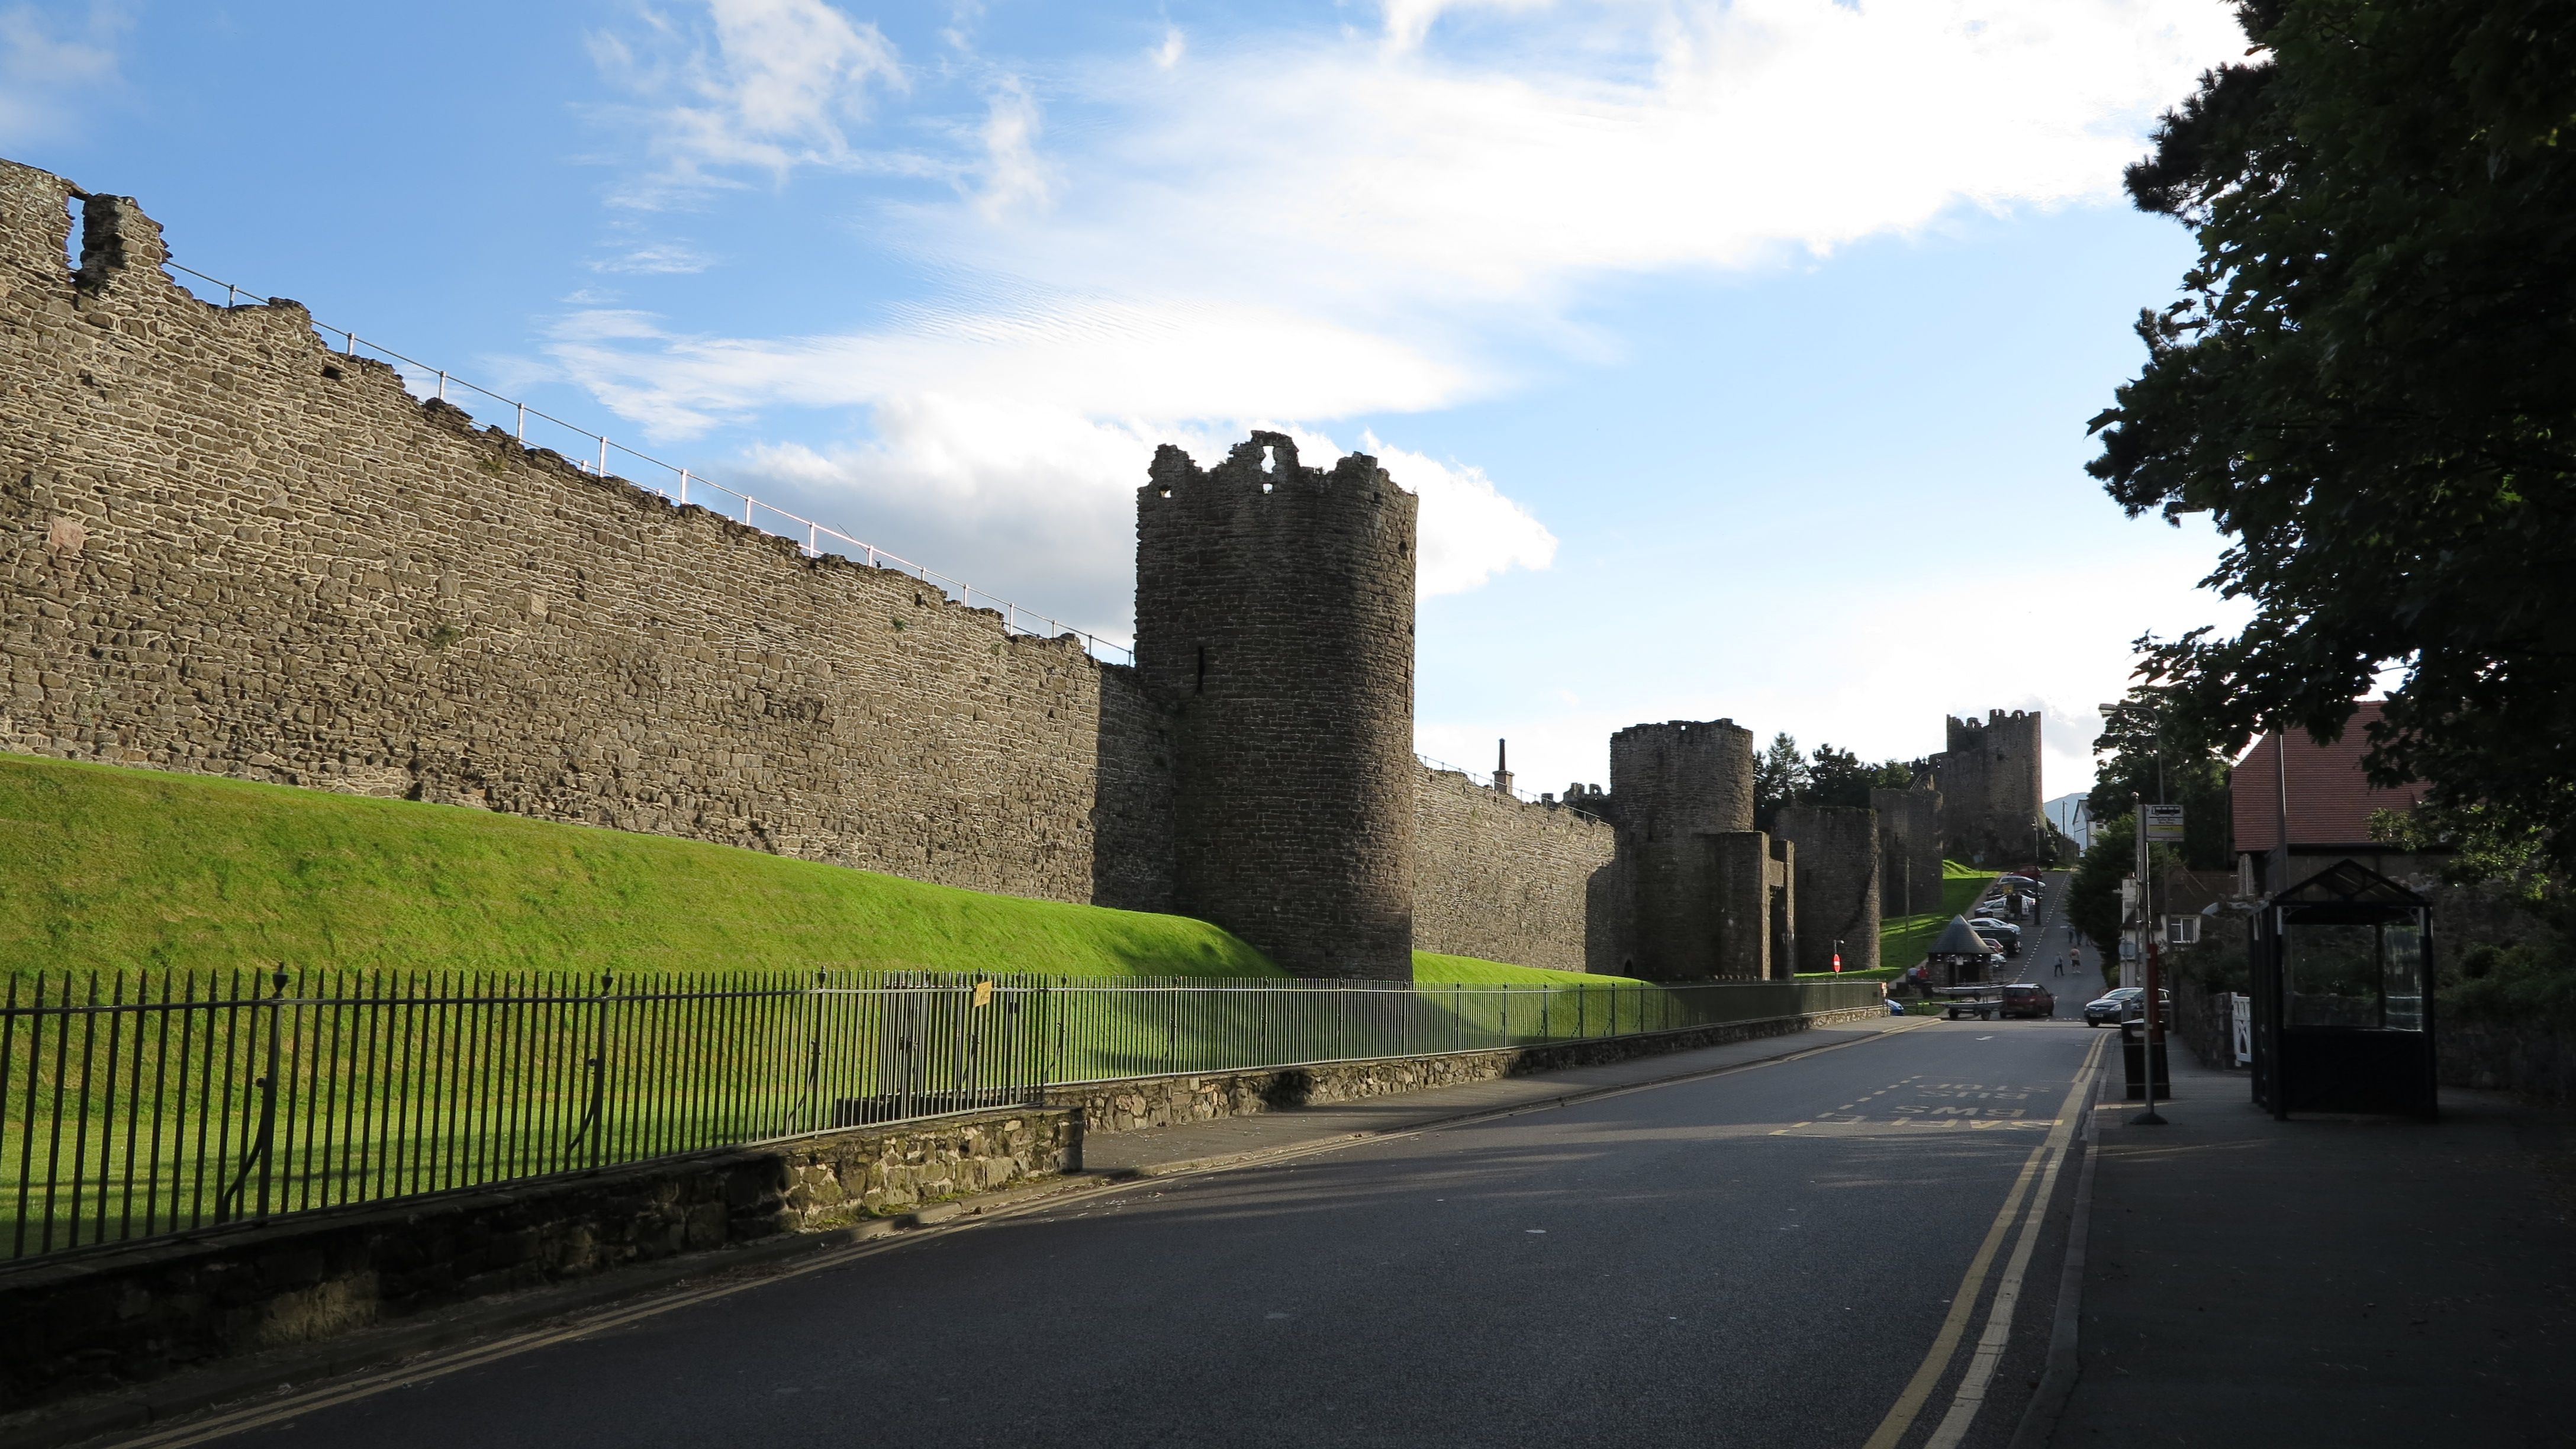 The huge castle walls of Conwy in north Wales...